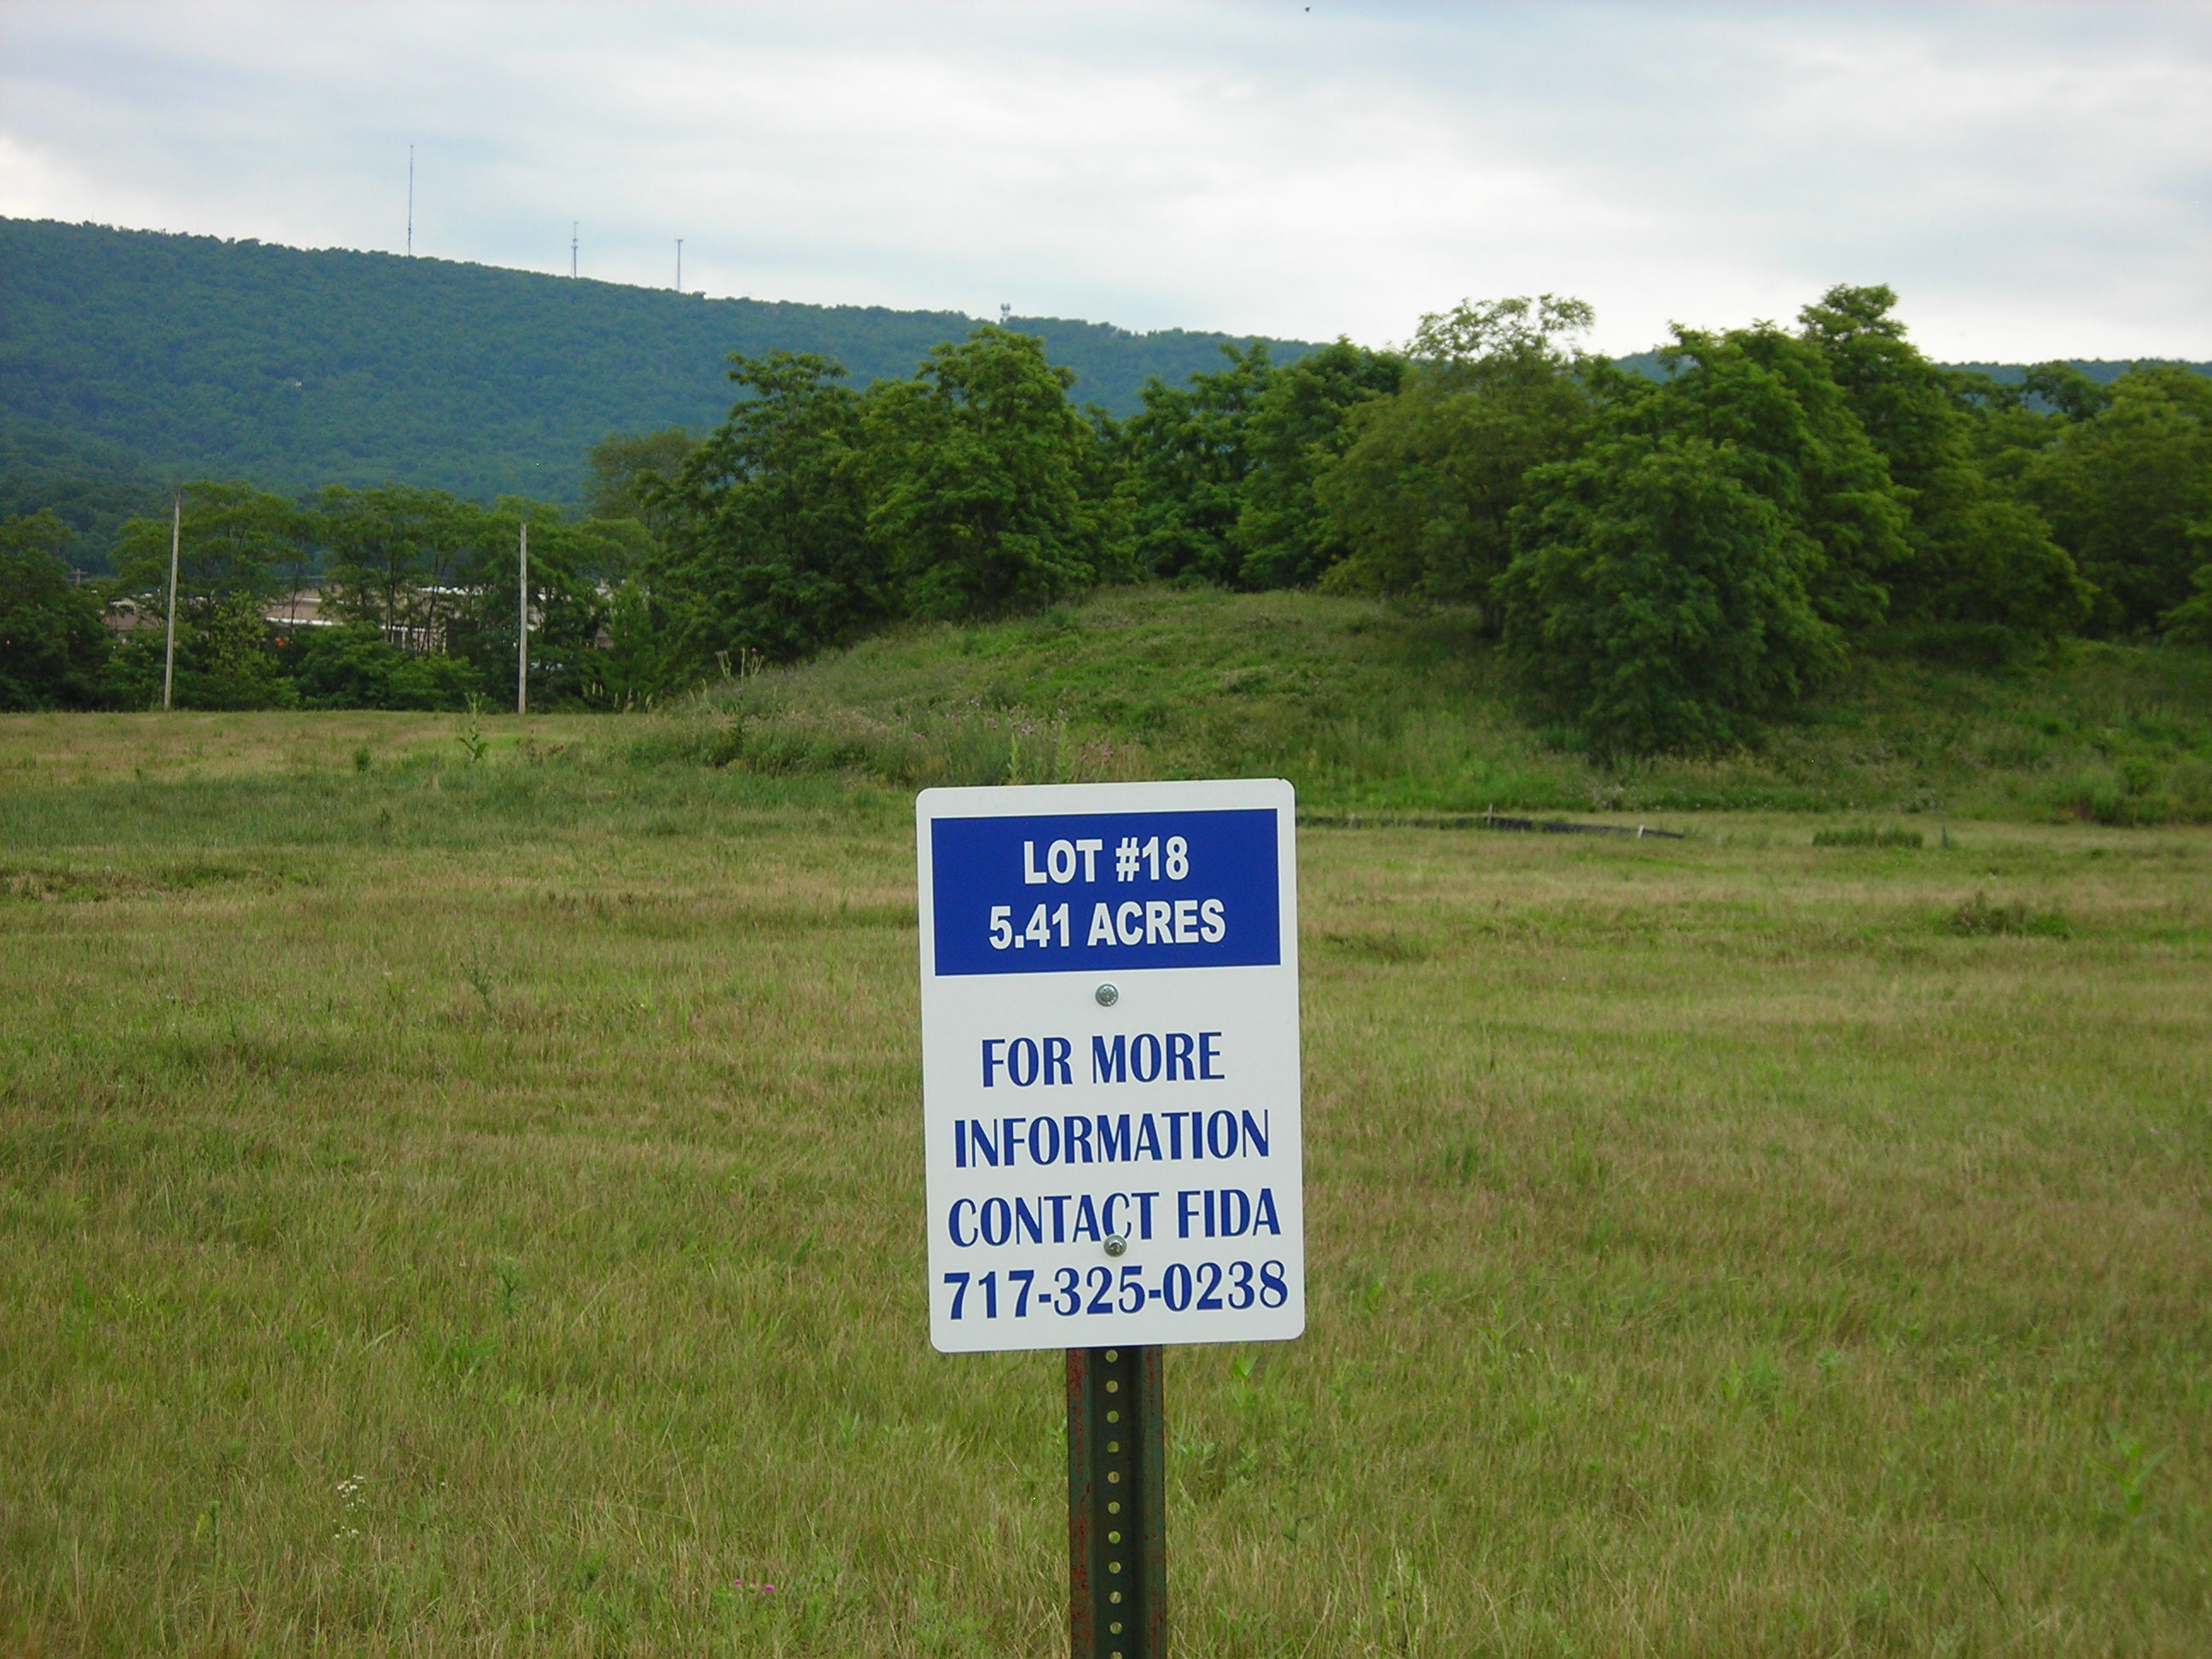 Lot #18 contains 5.41 acres ready to develop.